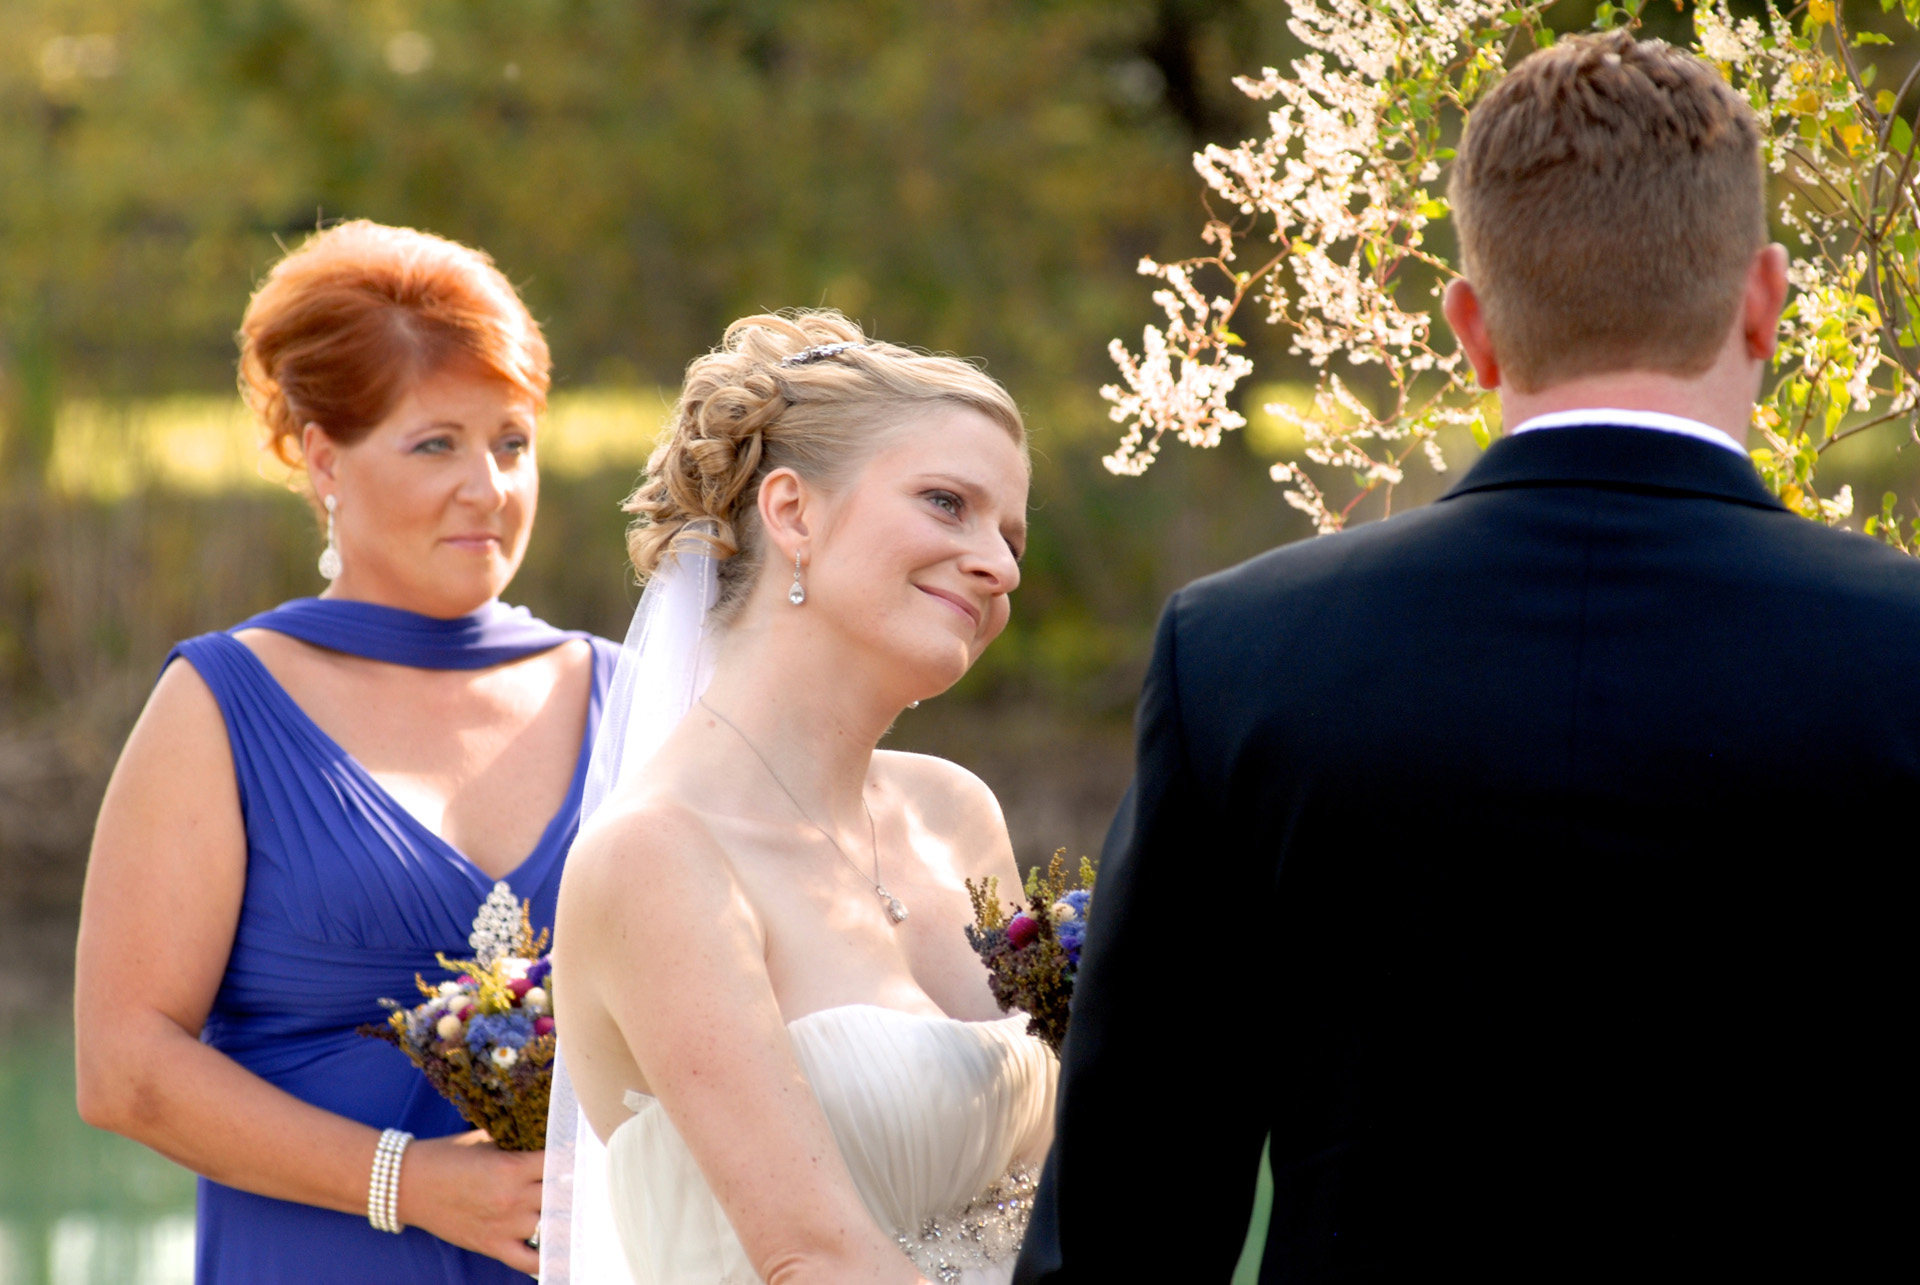 Best Michigan backyard wedding photography features photojournalist photos of  the bride listening to her groom's vows in metro Detroit, Michigan featuring their lovely backyard garden wedding in fall.